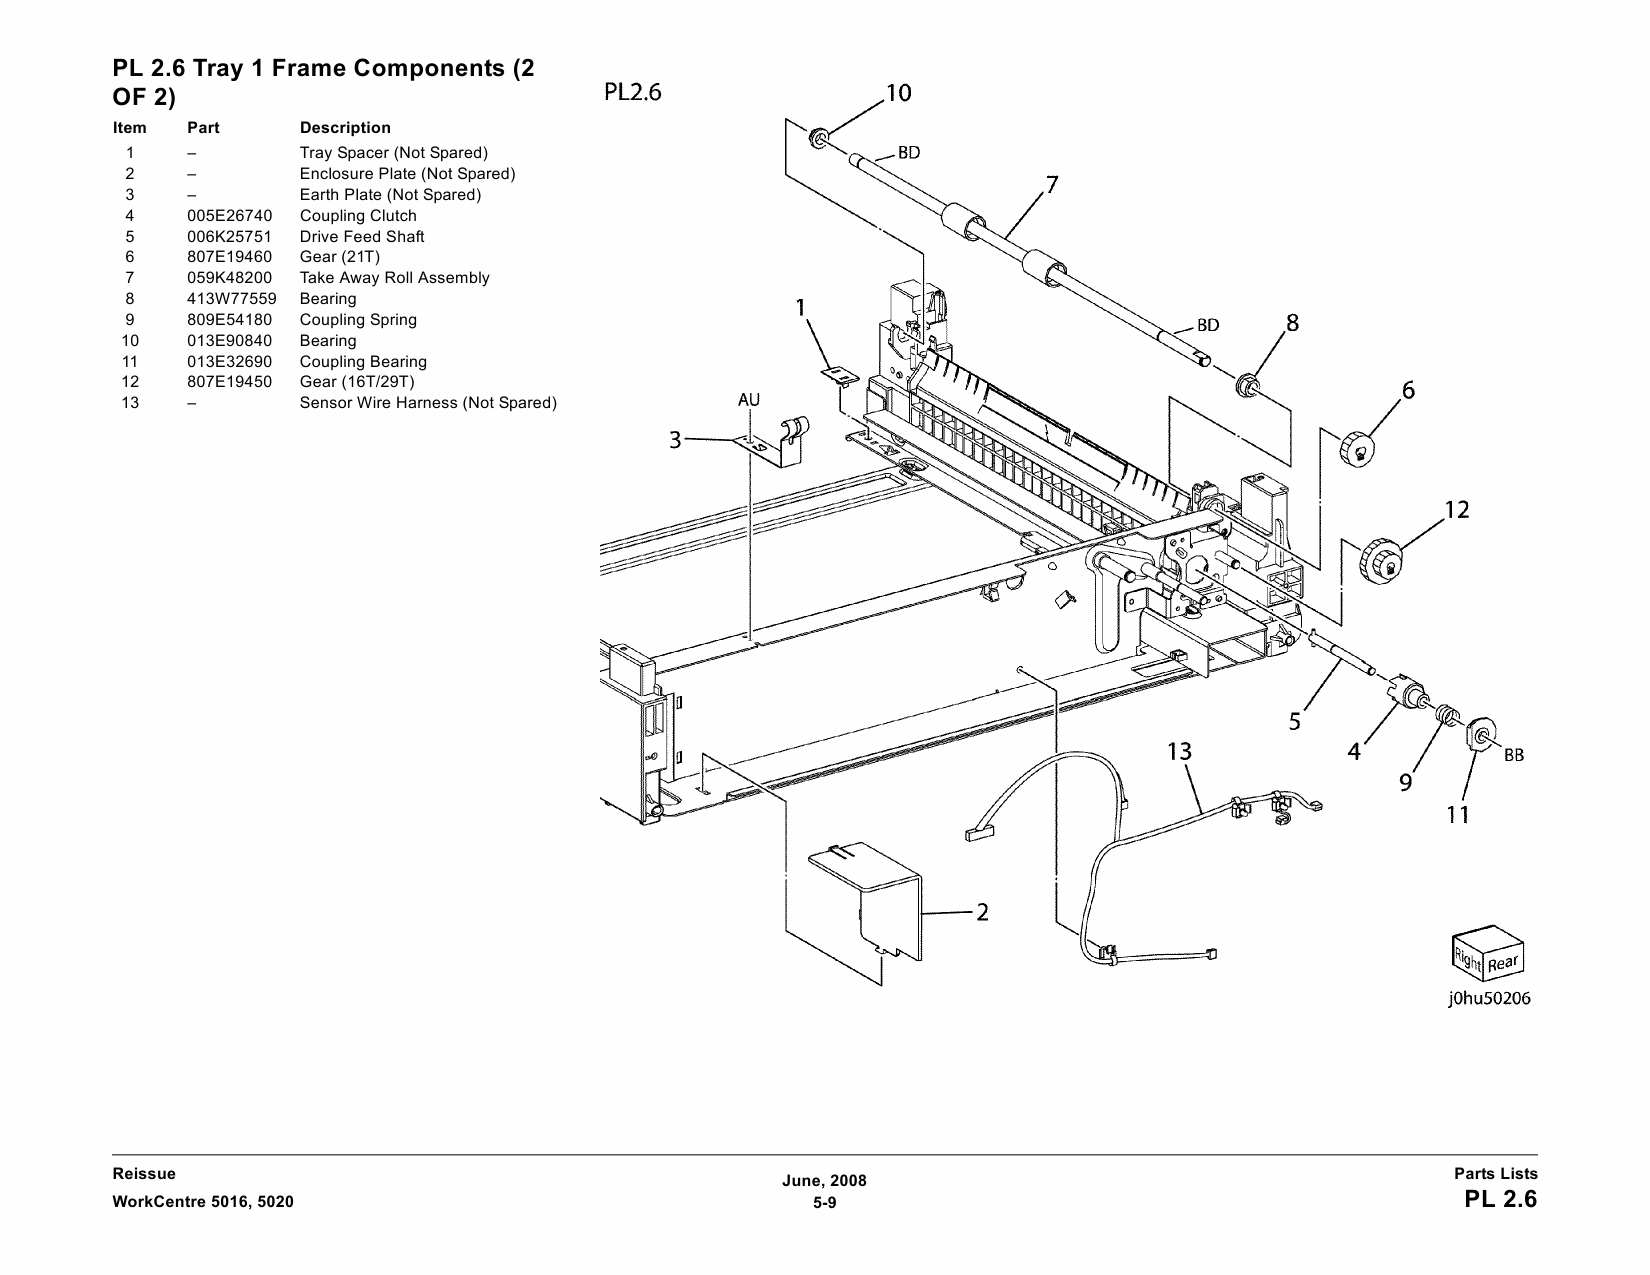 Xerox Workcentre Parts List And Service Manual